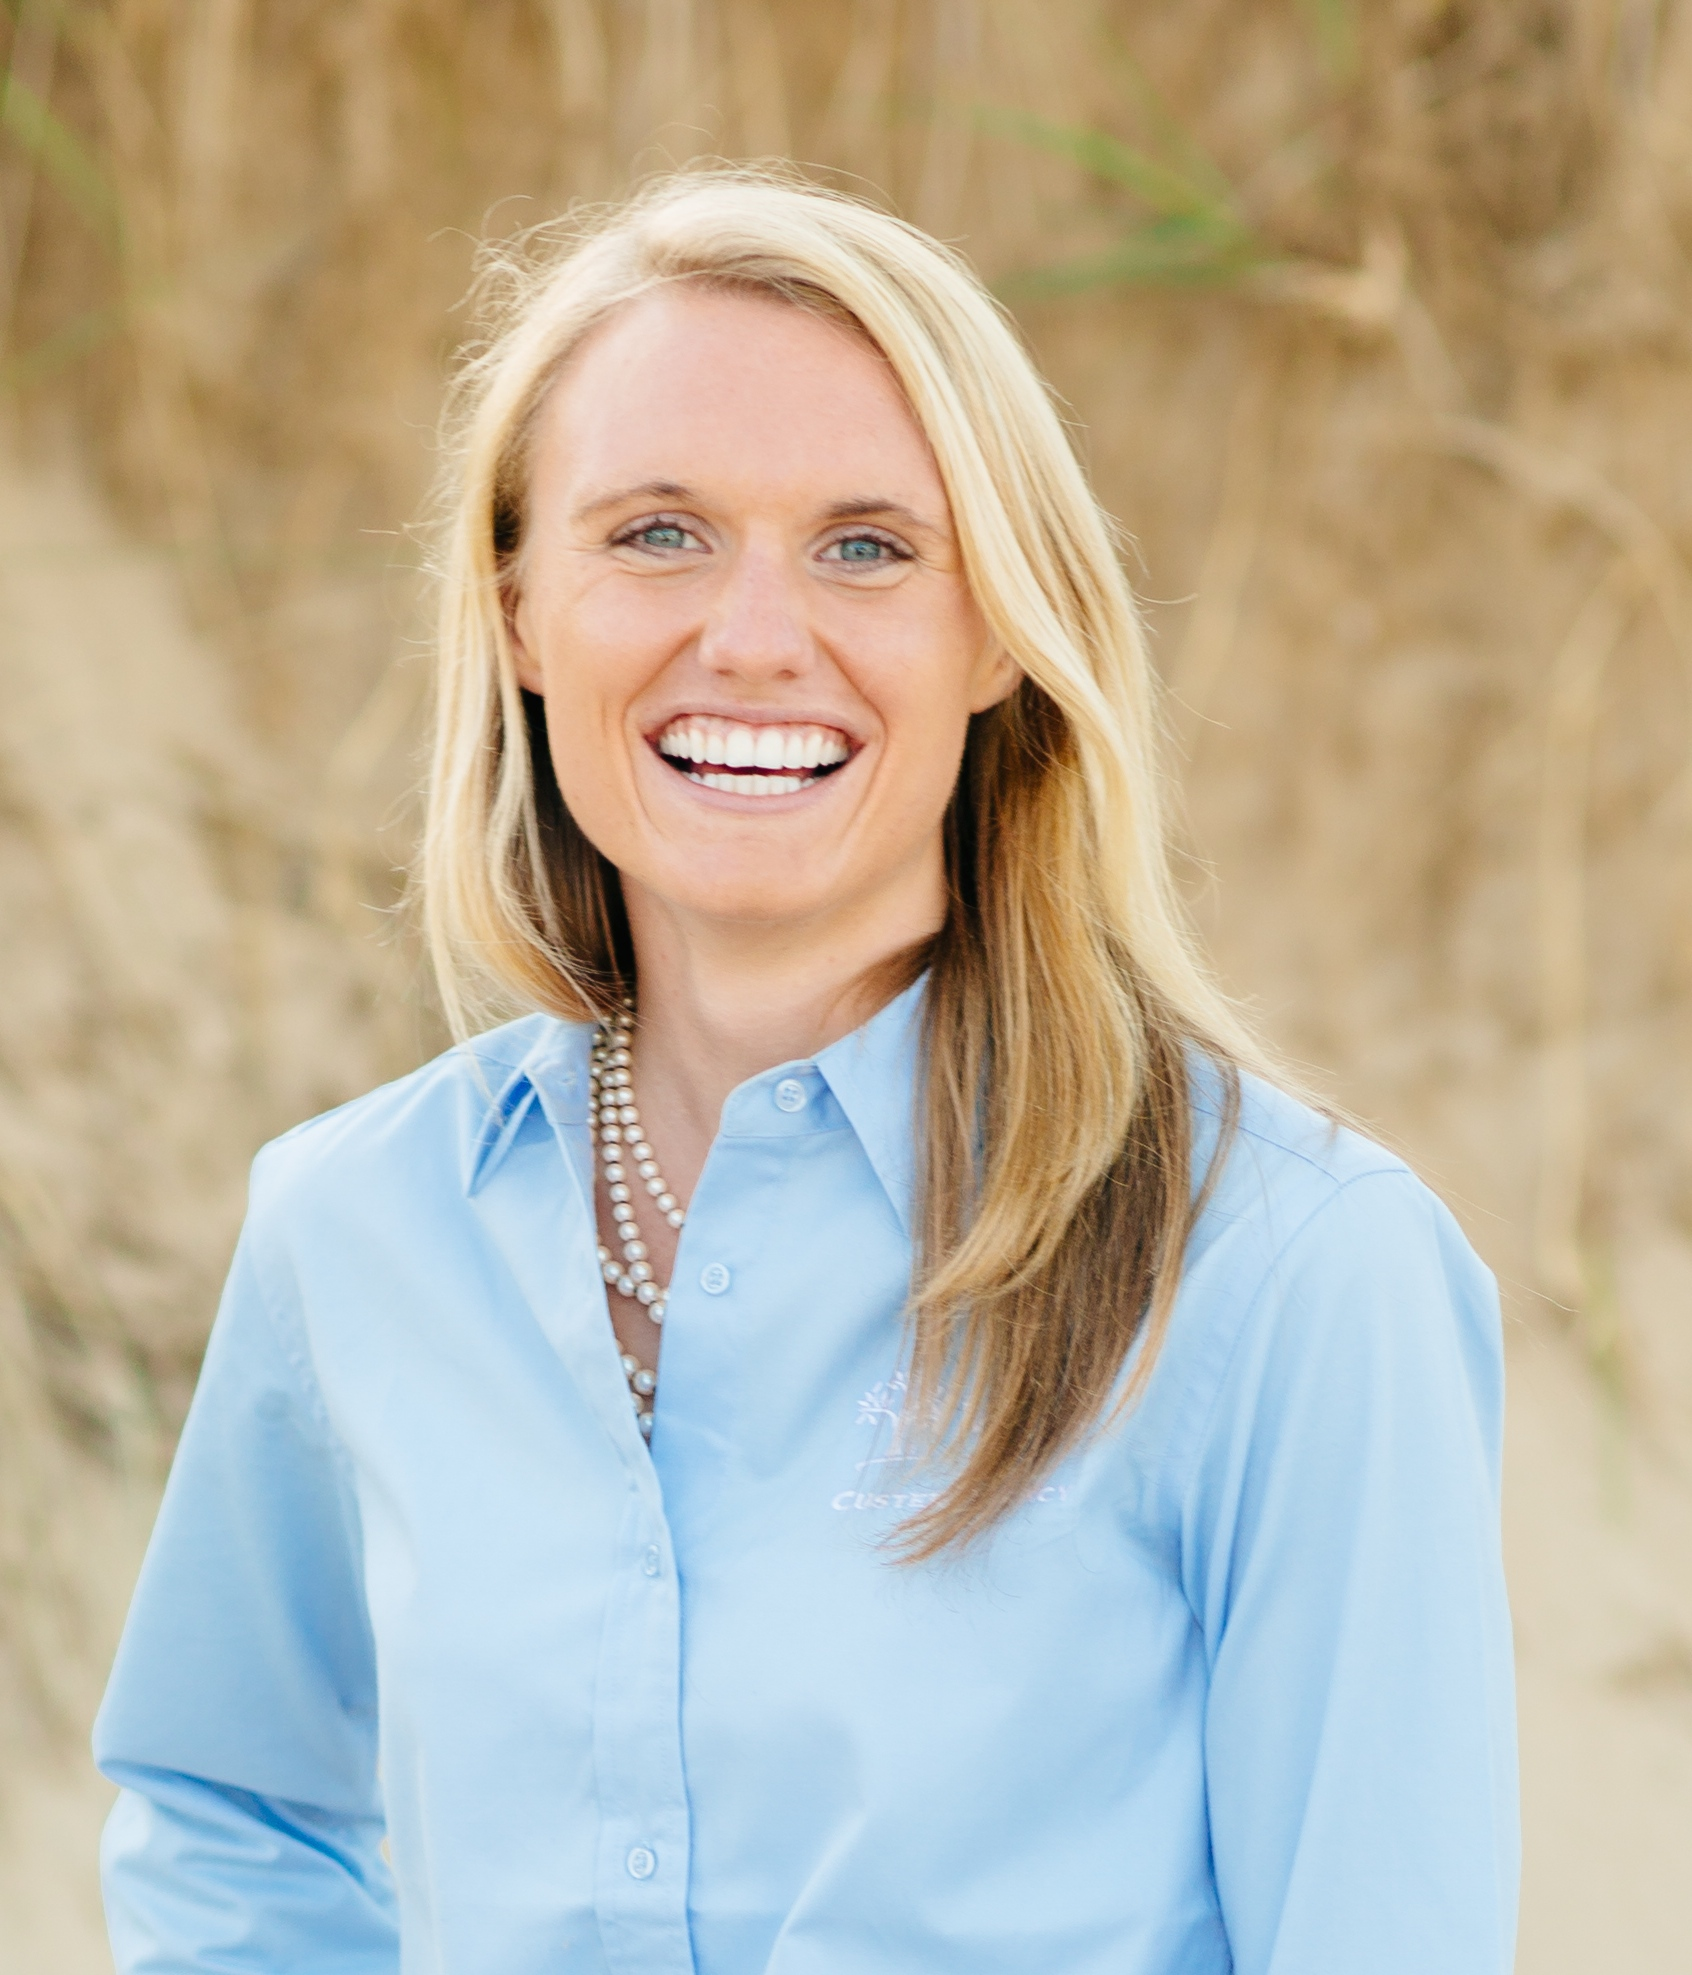 About the Author  - Stephanie (Custer) Vail is a member of the Custer Financial Advisors team.  She specializes in helping millennials with financial literacy and financial  planning.  To learn more about Stephanie and Custer Financial Advisors, visit www.CusterFinancialAdvisors.Com or email Stephanie at SVail@lpl.com.